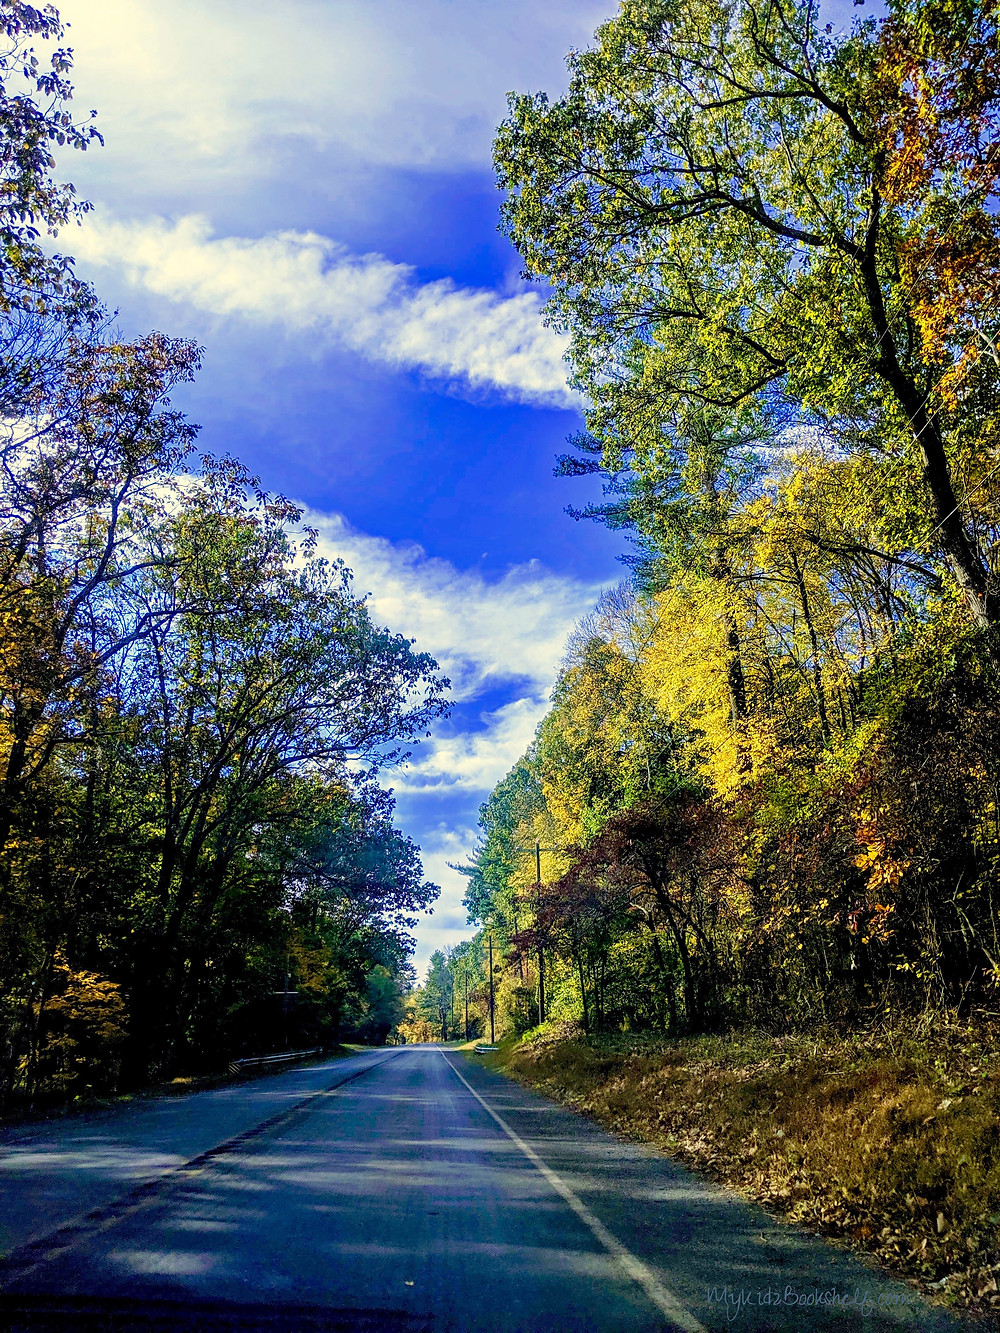 picture-of-road-with-sky-and-woods-on-side